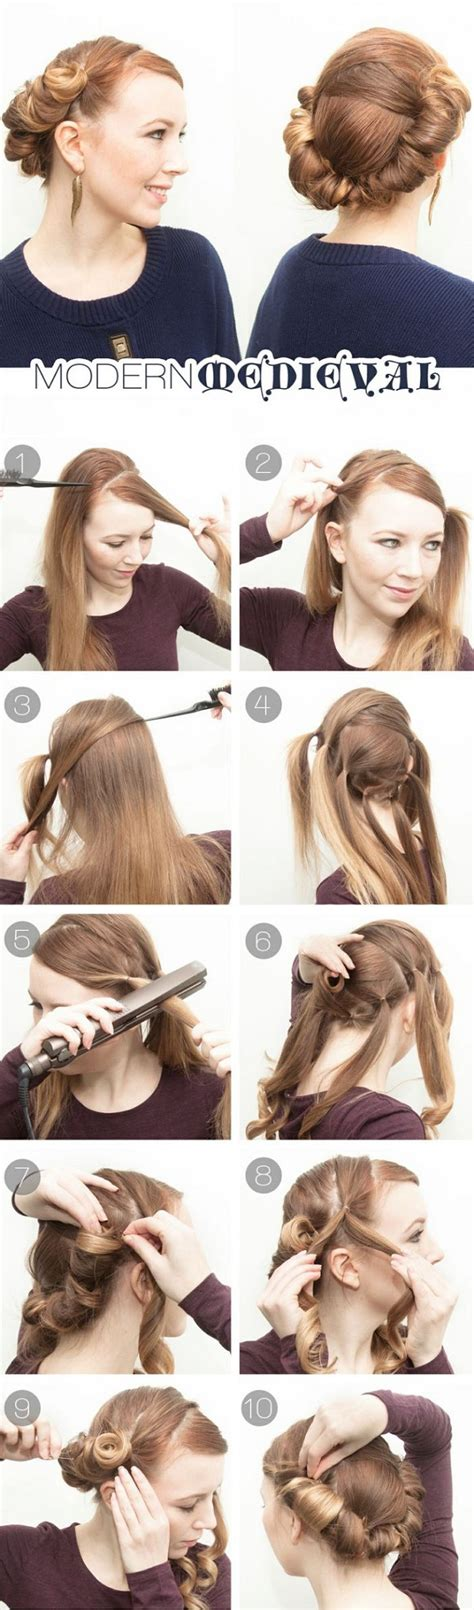 how to do medieval hairstyles modern medieval hairstyle diy tutorial alldaychic